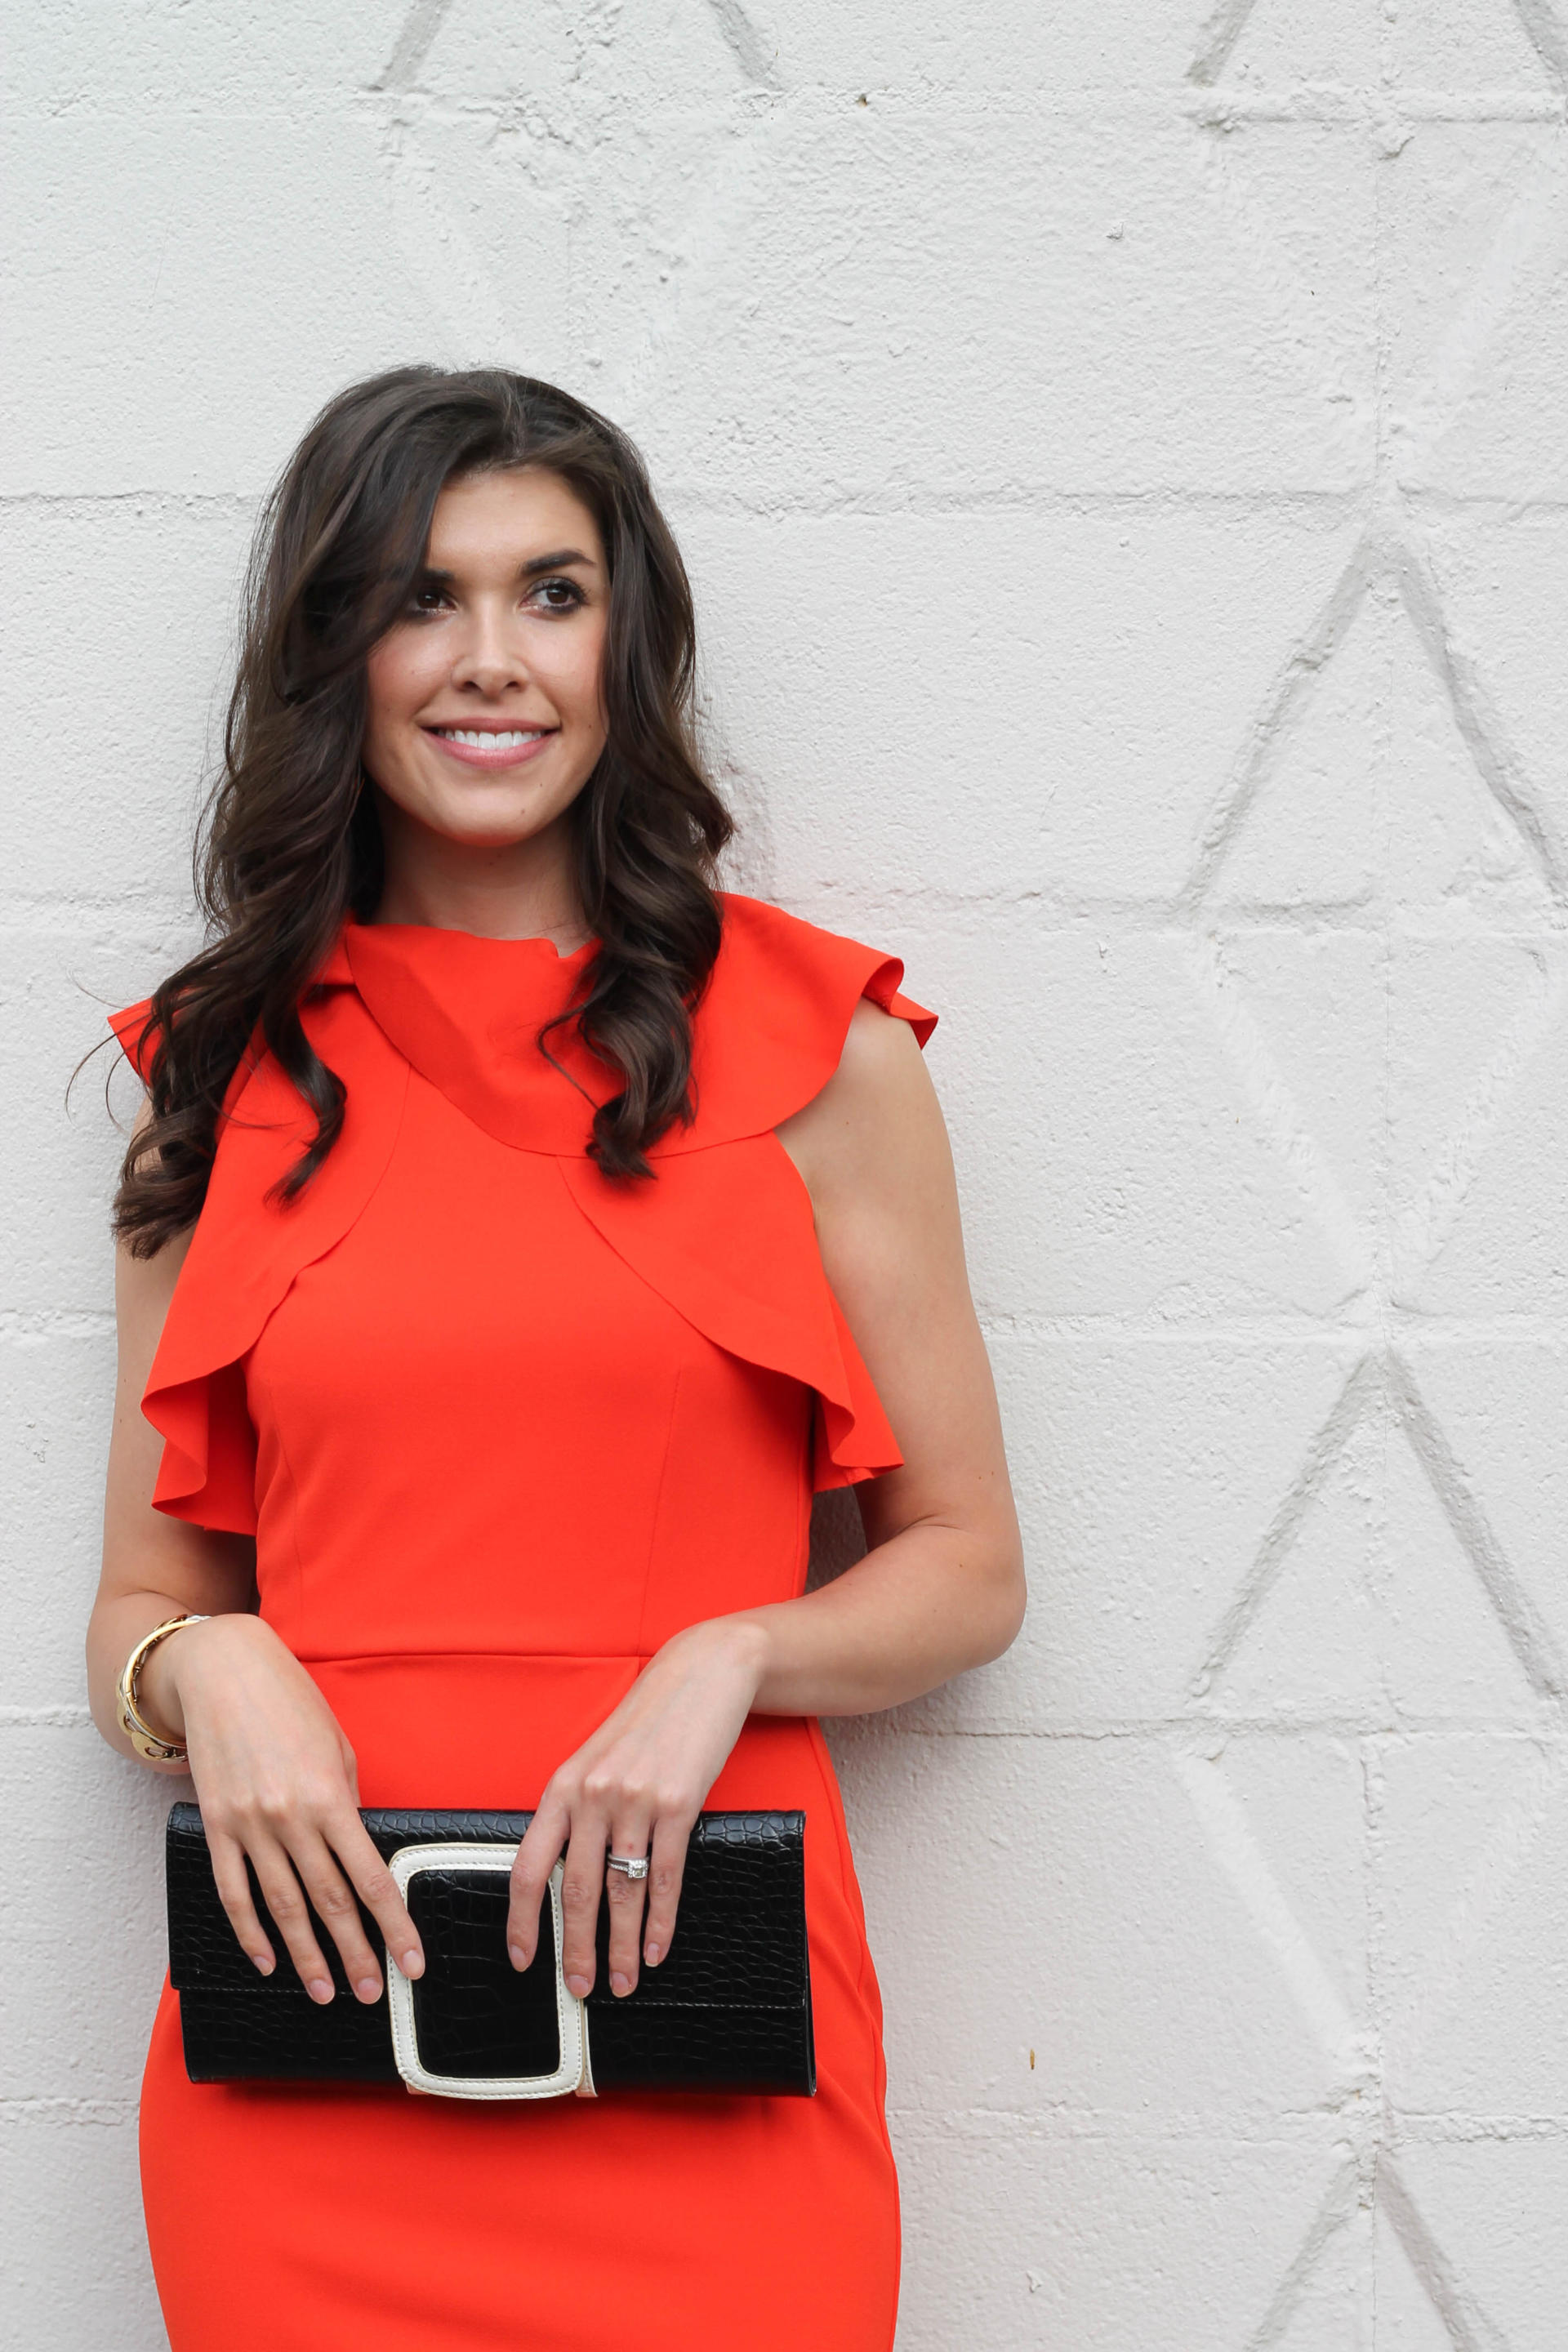 Ruffles - A Red Ruffle Dress for Christmas by New York fashion blogger Style Waltz